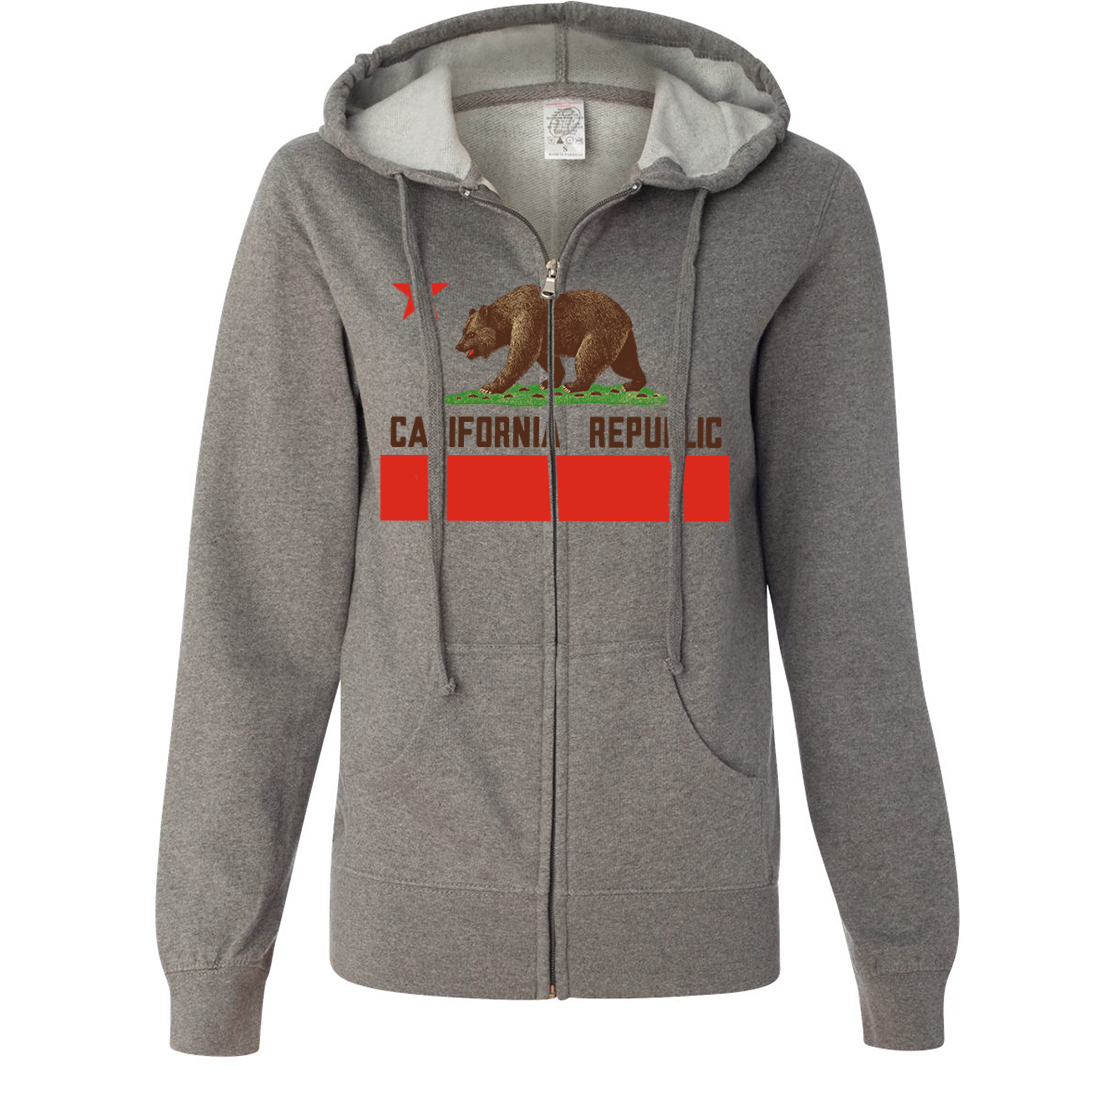 Don Pimentel California Republic Bear Flag Brown Text Ladies Lightweight Fitted Zip-Up Hoodie